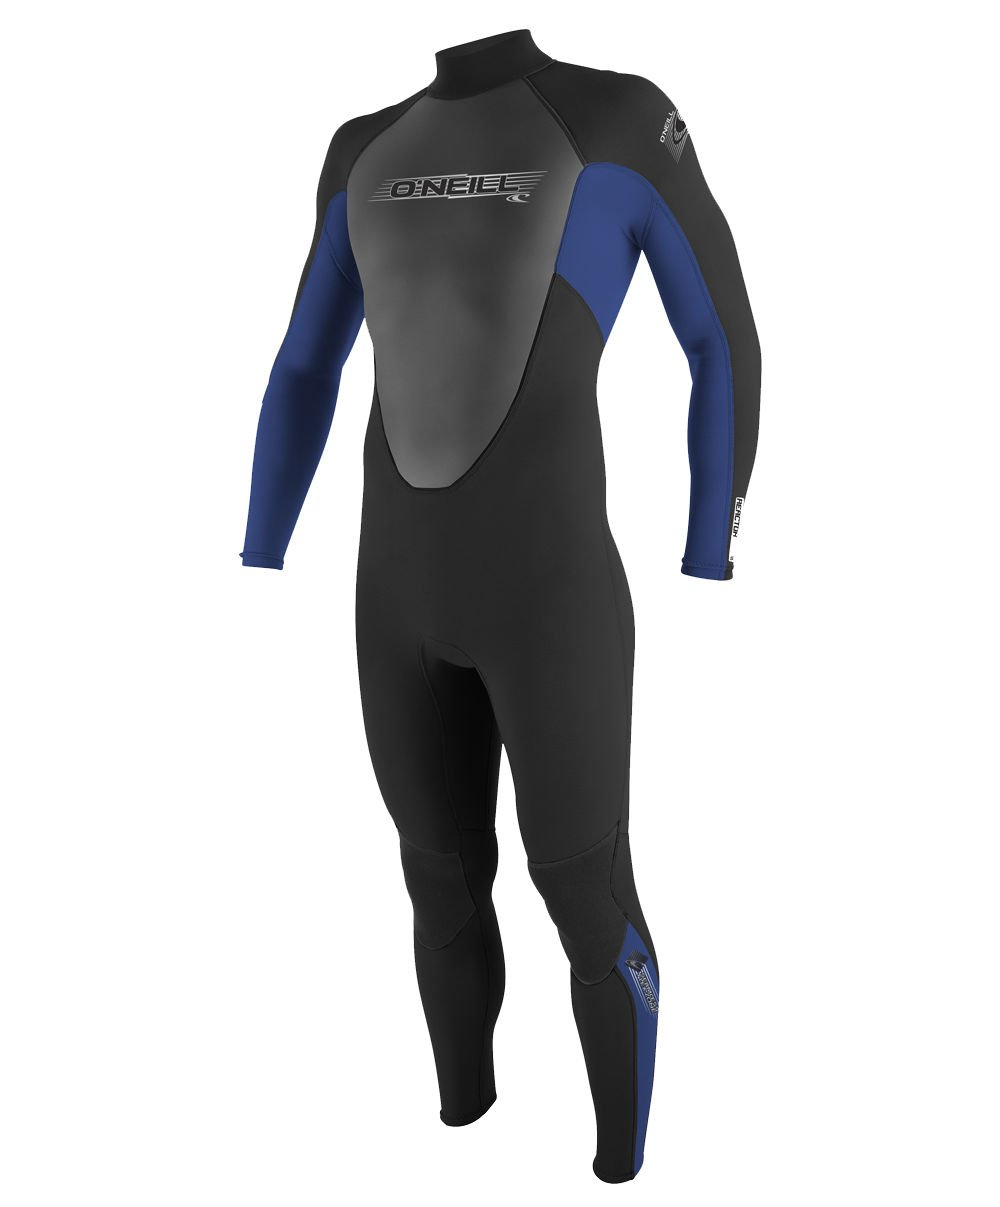 O'Neill Youth Reactor 3/2mm Back Zip Full Wetsuit, Black/Pacific/Black, 12 by O'Neill Wetsuits (Image #1)